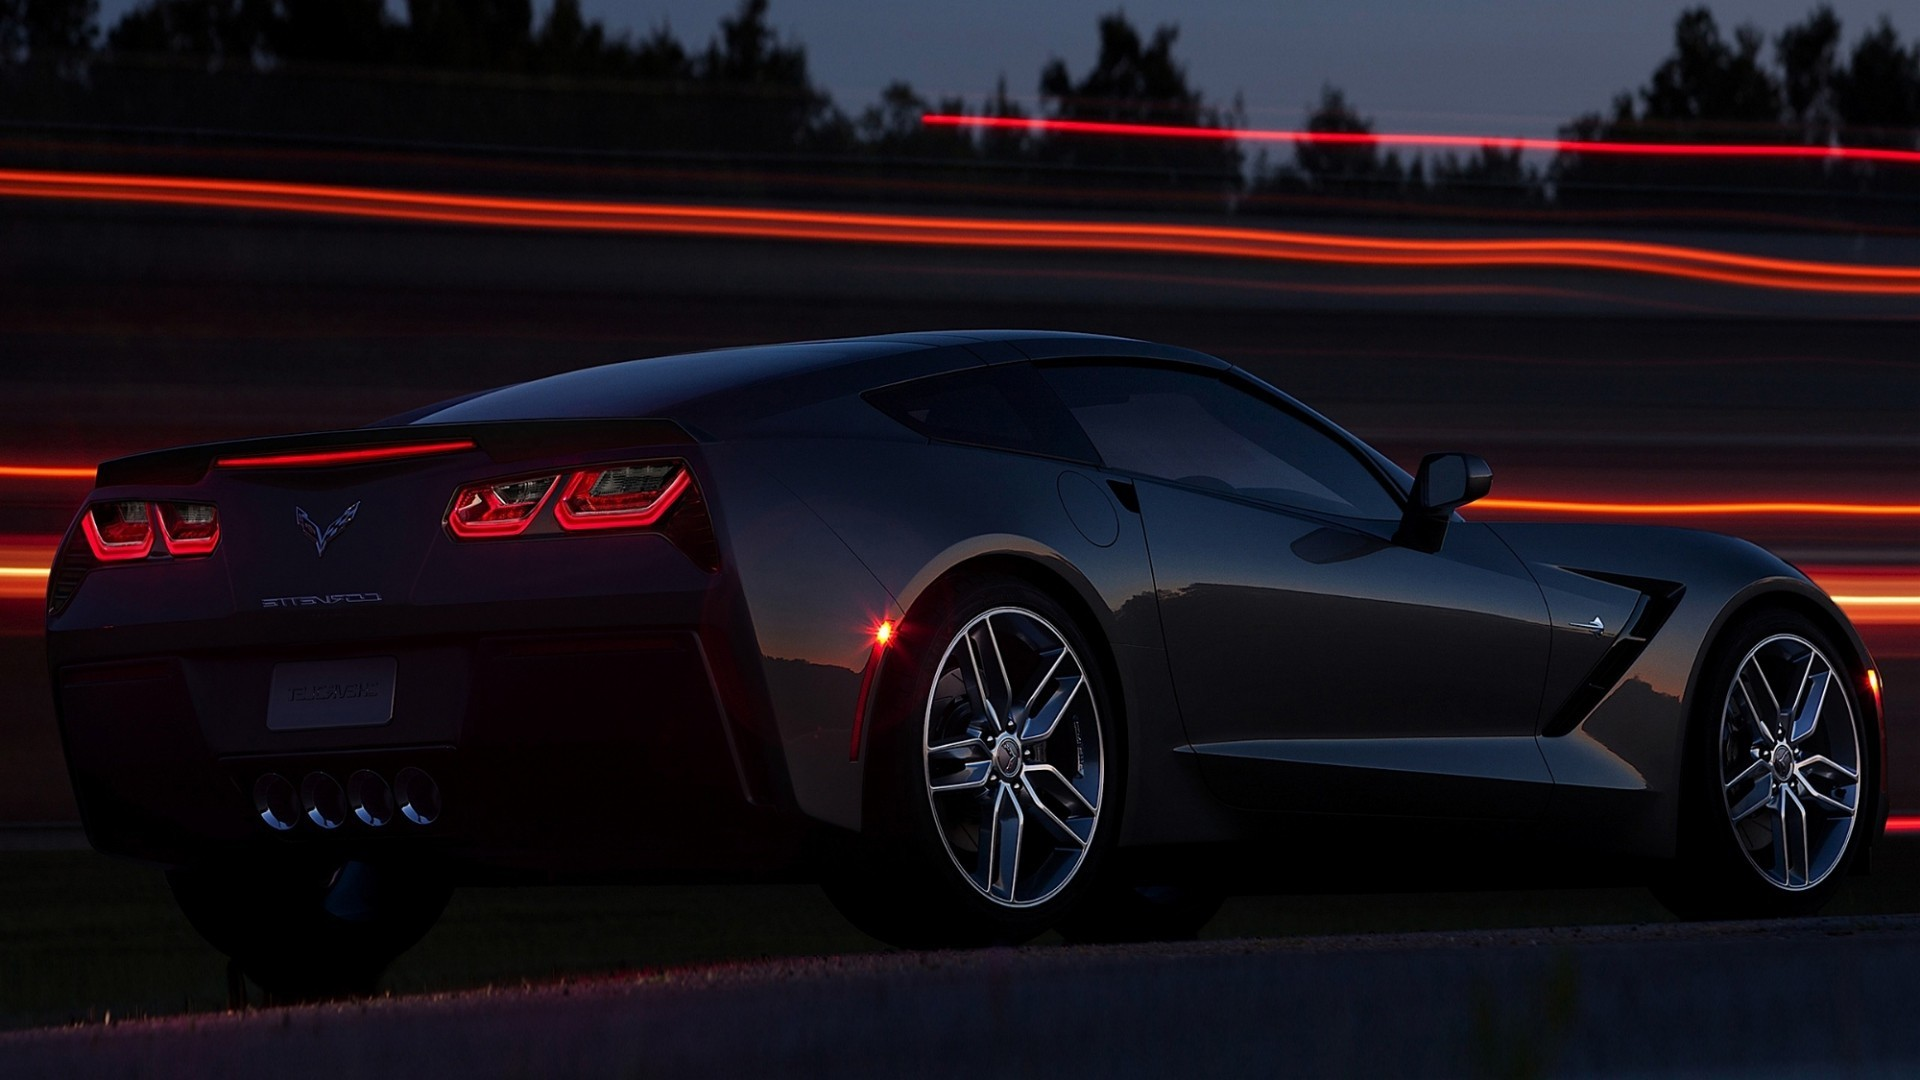 1920x1080 Chevrolet Corvette Stingray C7